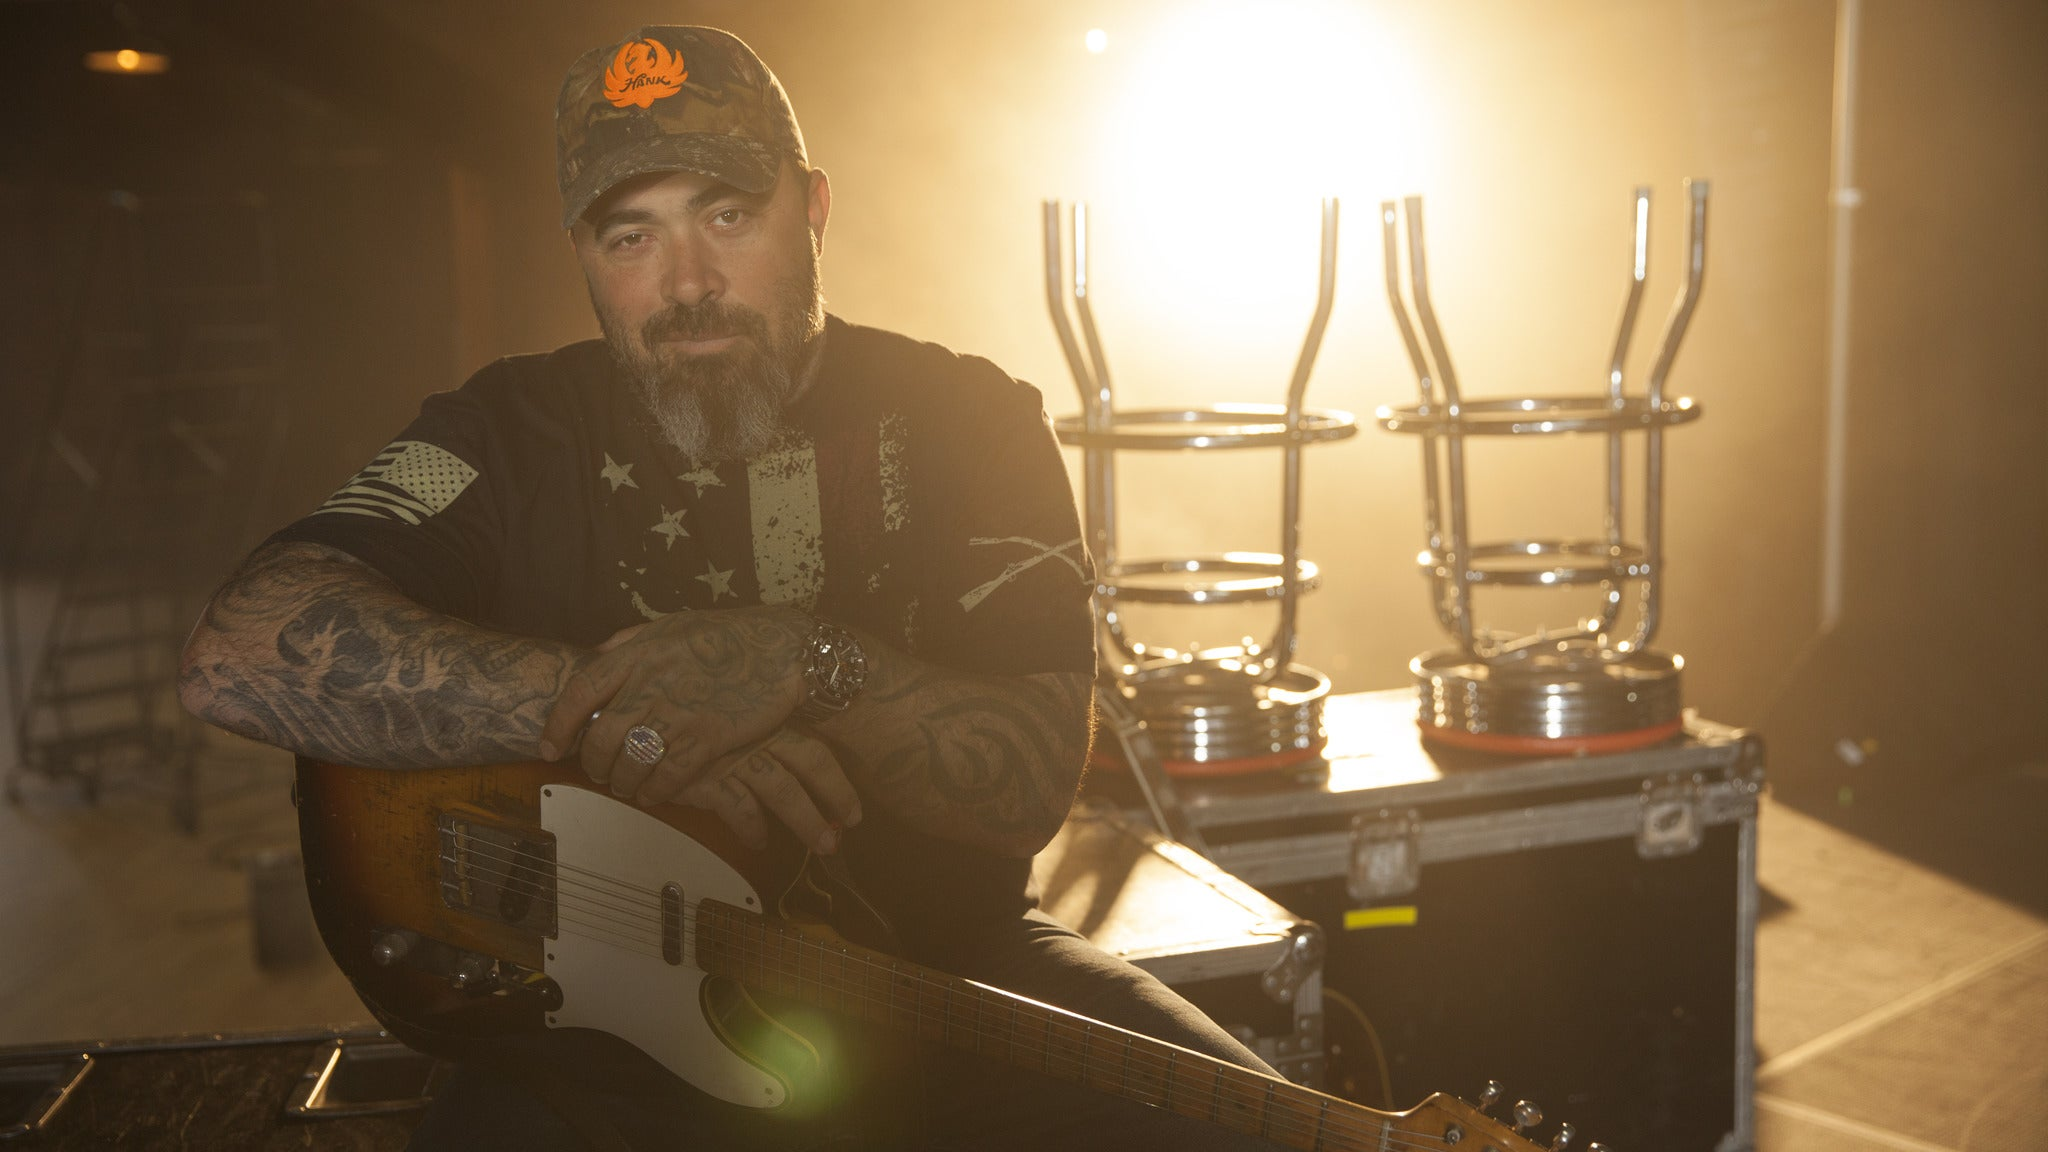 Aaron Lewis, The Sinner Tour